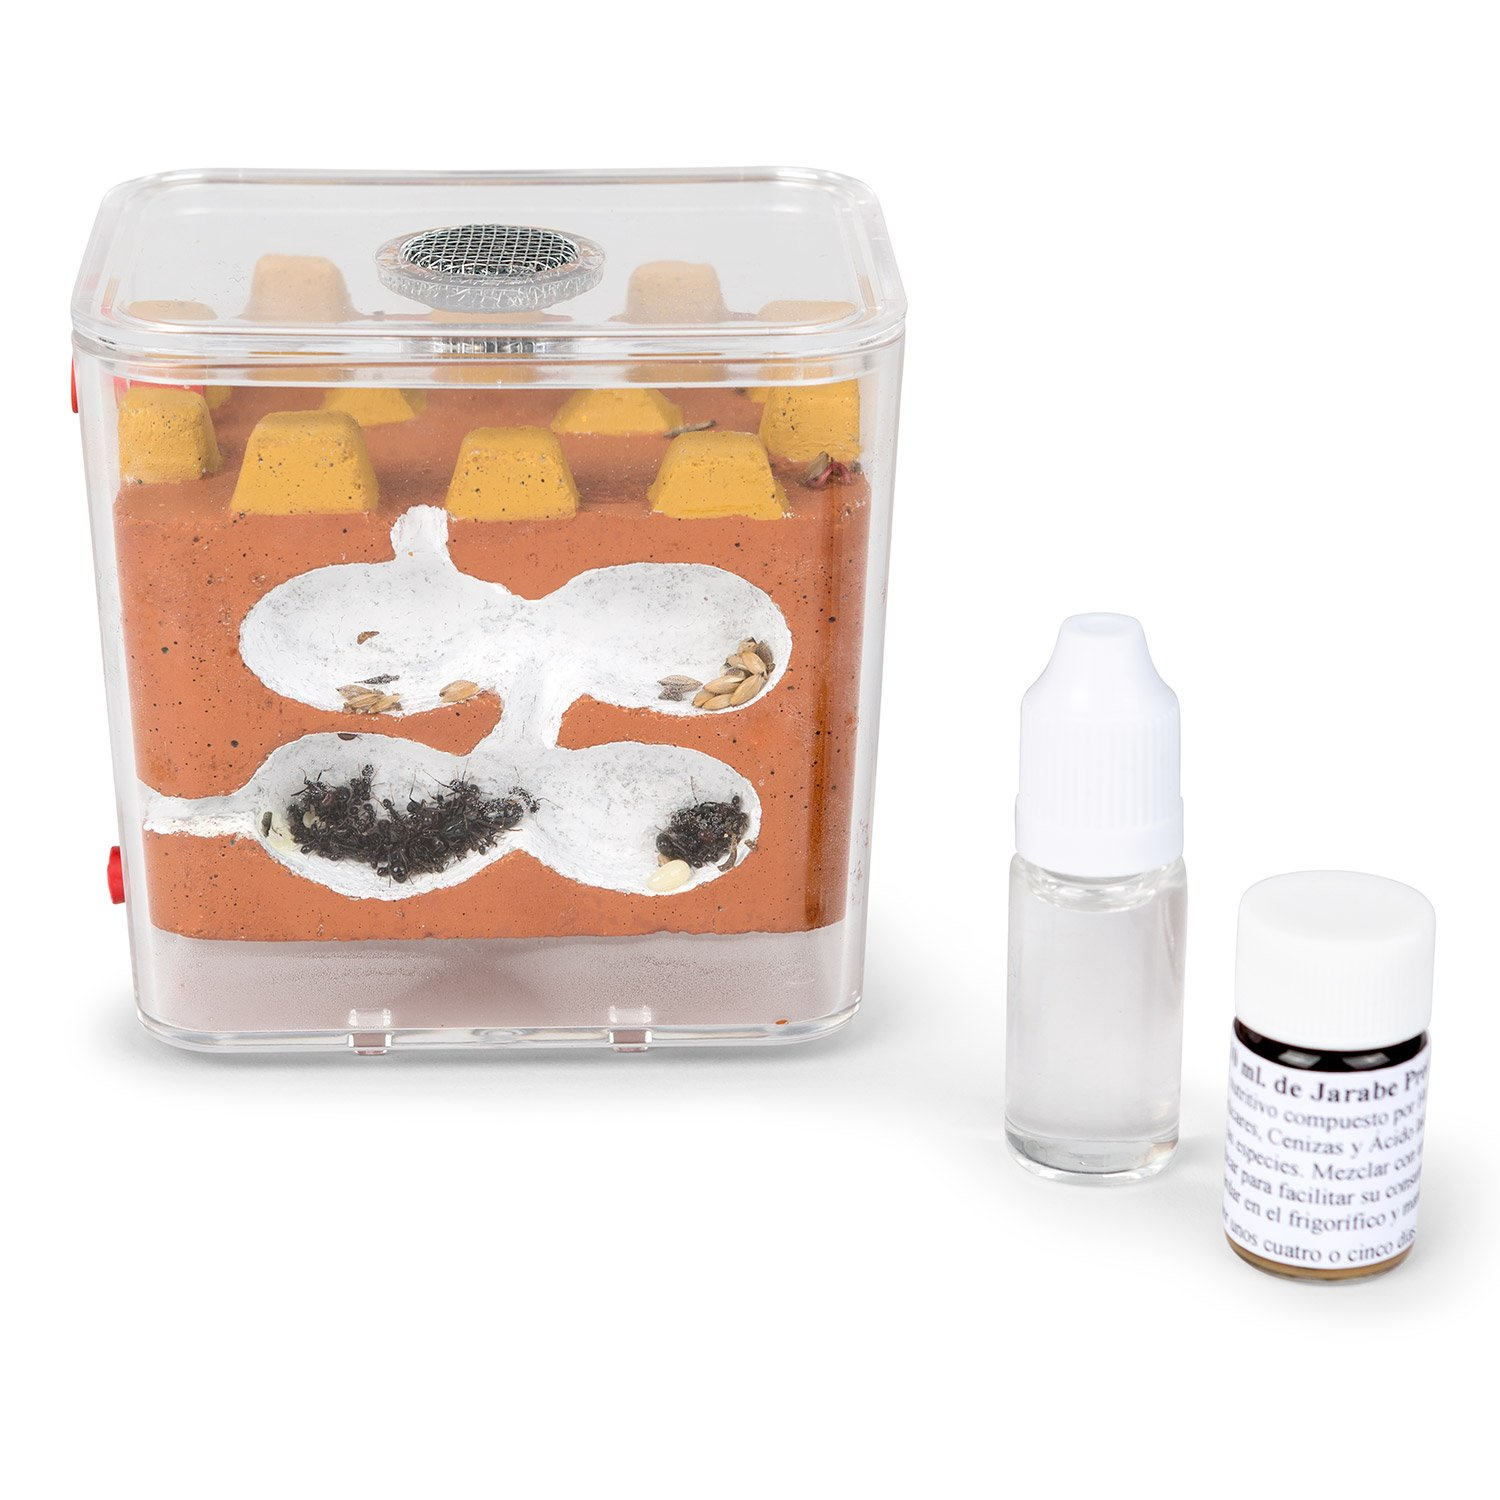 Ant Farm Biorama Kit (Free Ants with Queen) AntHouse